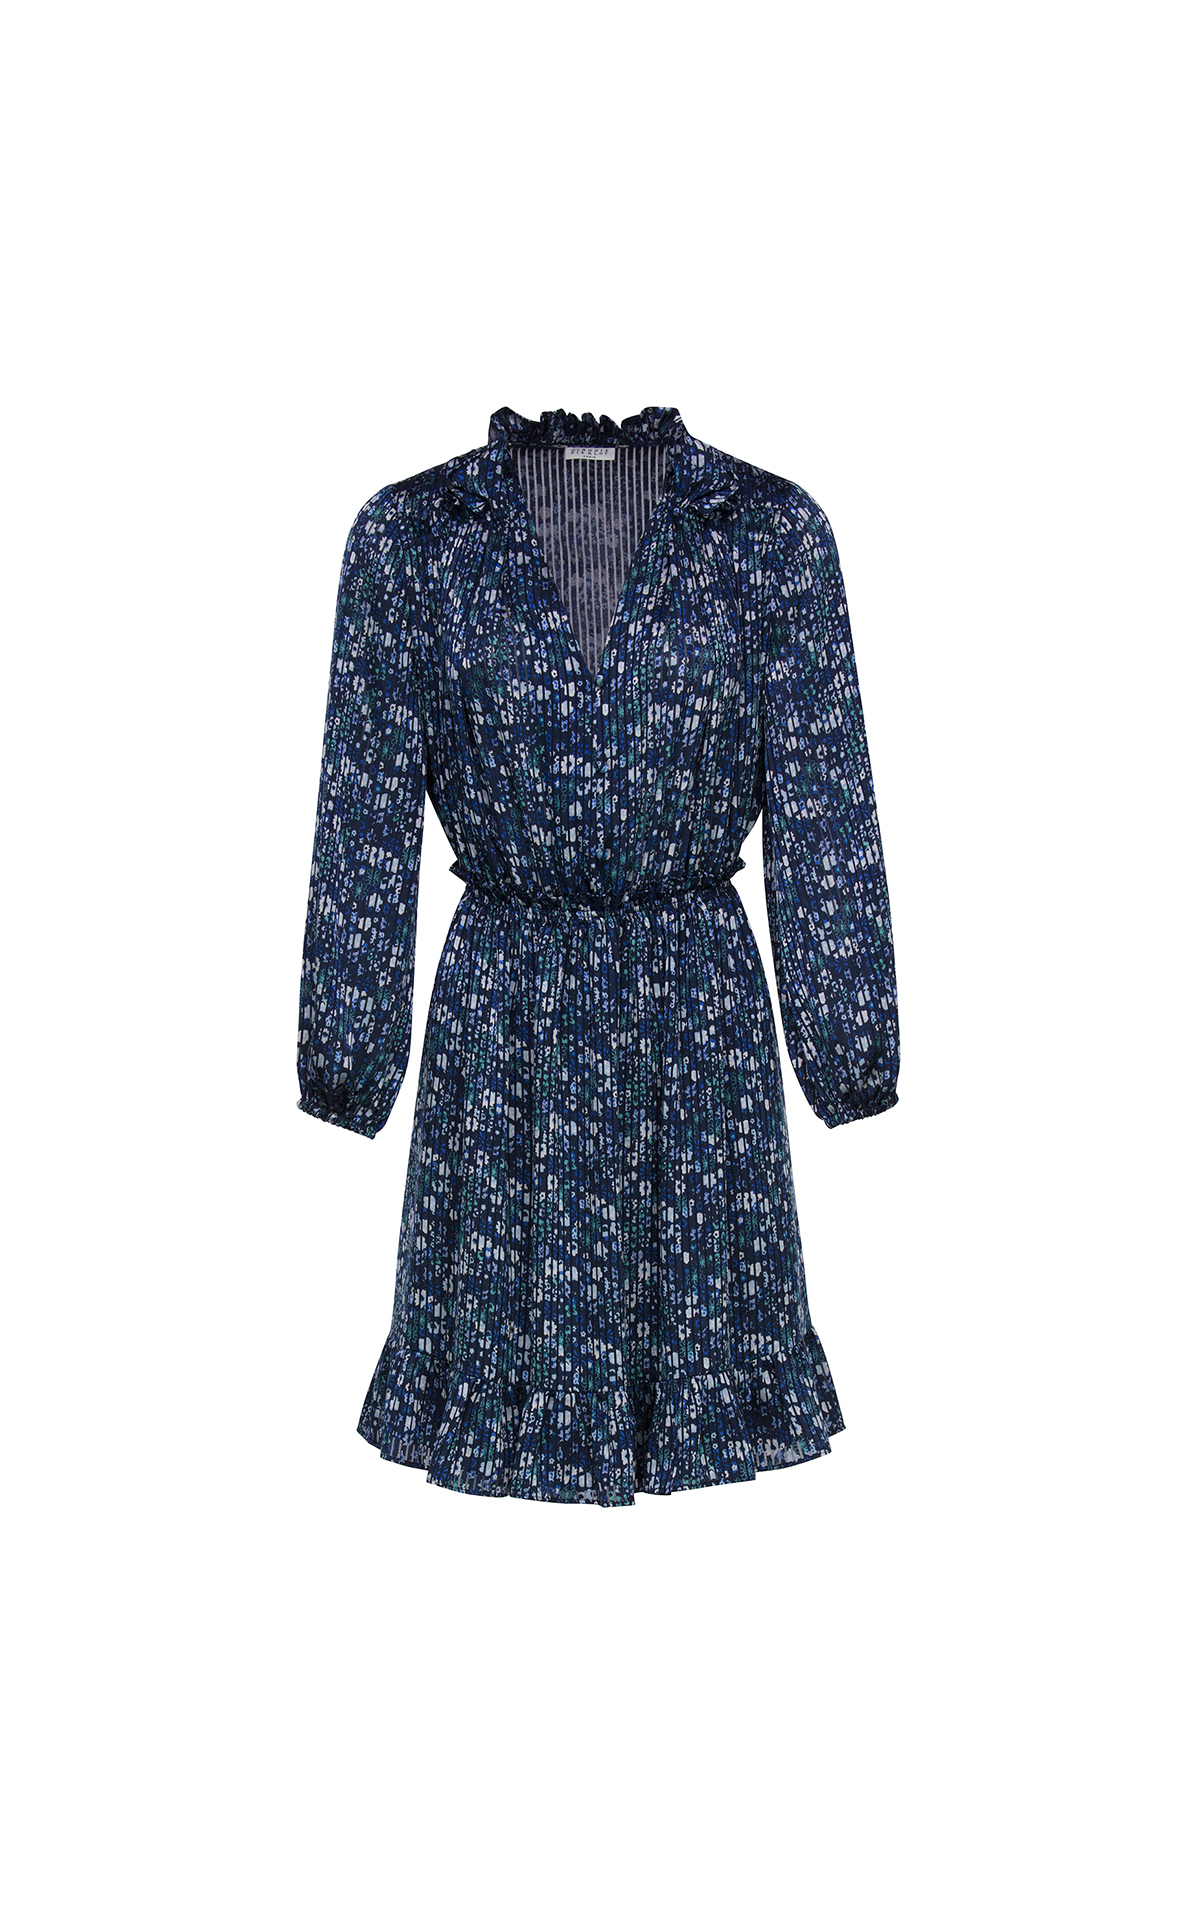 Claudie Pierlot Rosana dress at The Bicester Village Shopping Collection